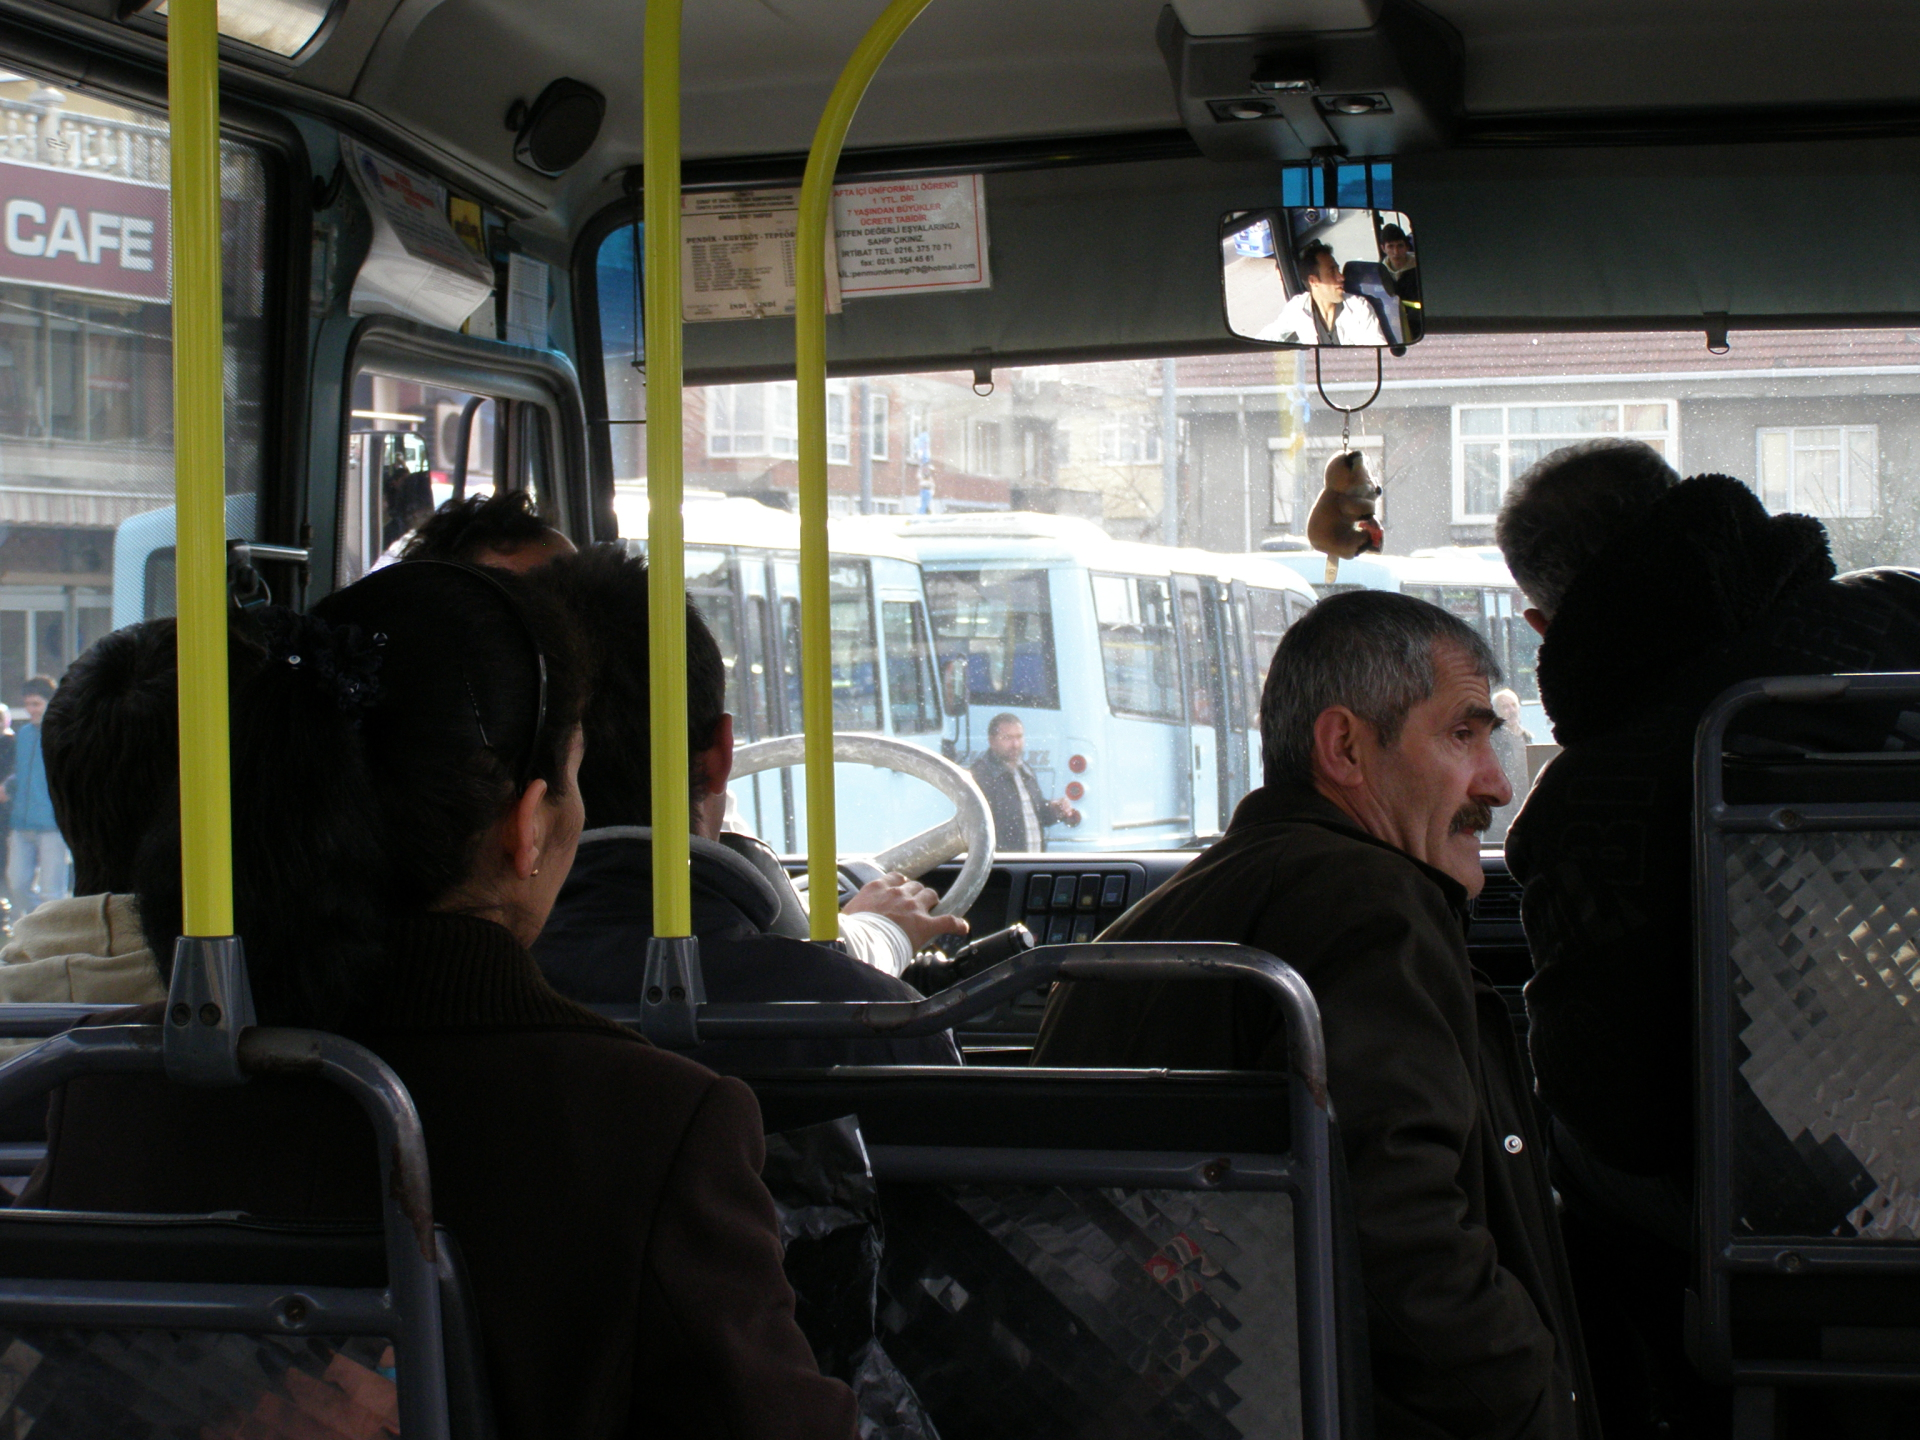 An inside view of a city mini-bus, with others lined up alongside. Istanbul, Turkey: annmariemershon.com